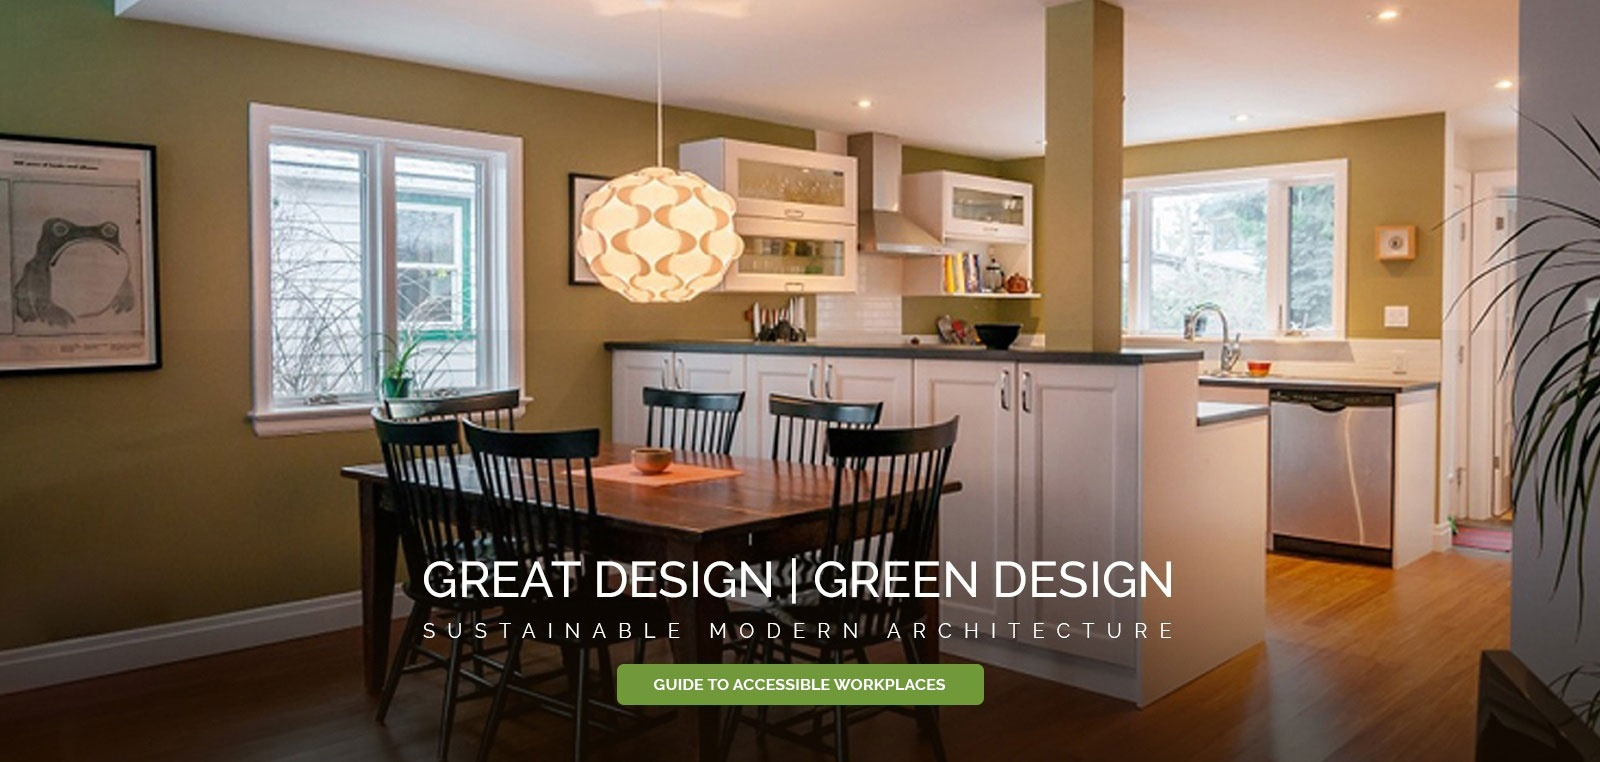 Green Residential Renovations Architects in Toronto ON - The Architect Builders Collaborative Inc.